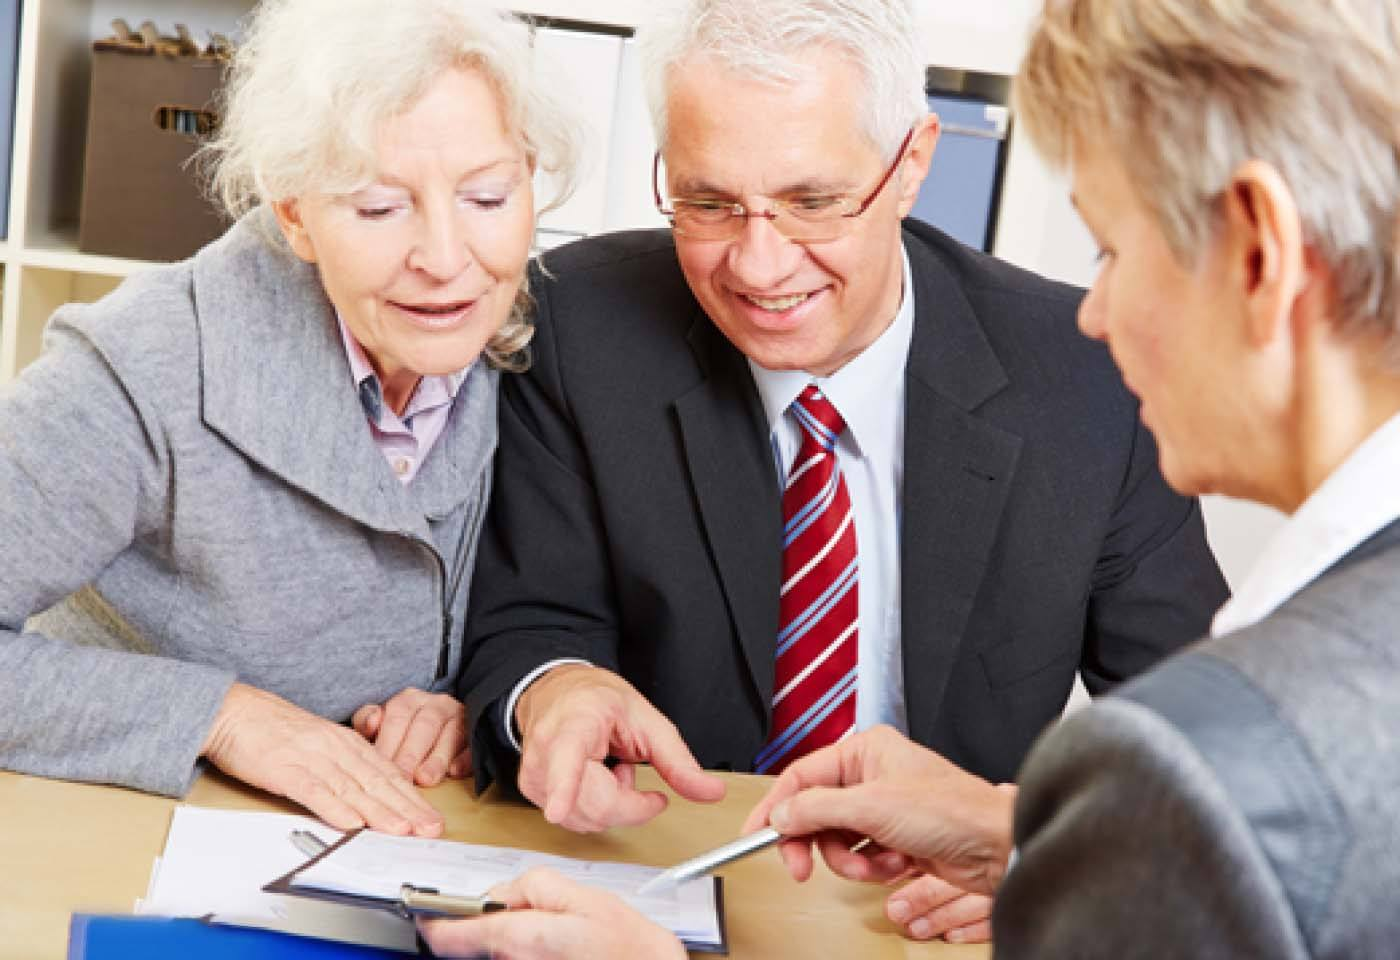 The lawyer consult the two seniors aboutContributory Parent Visas